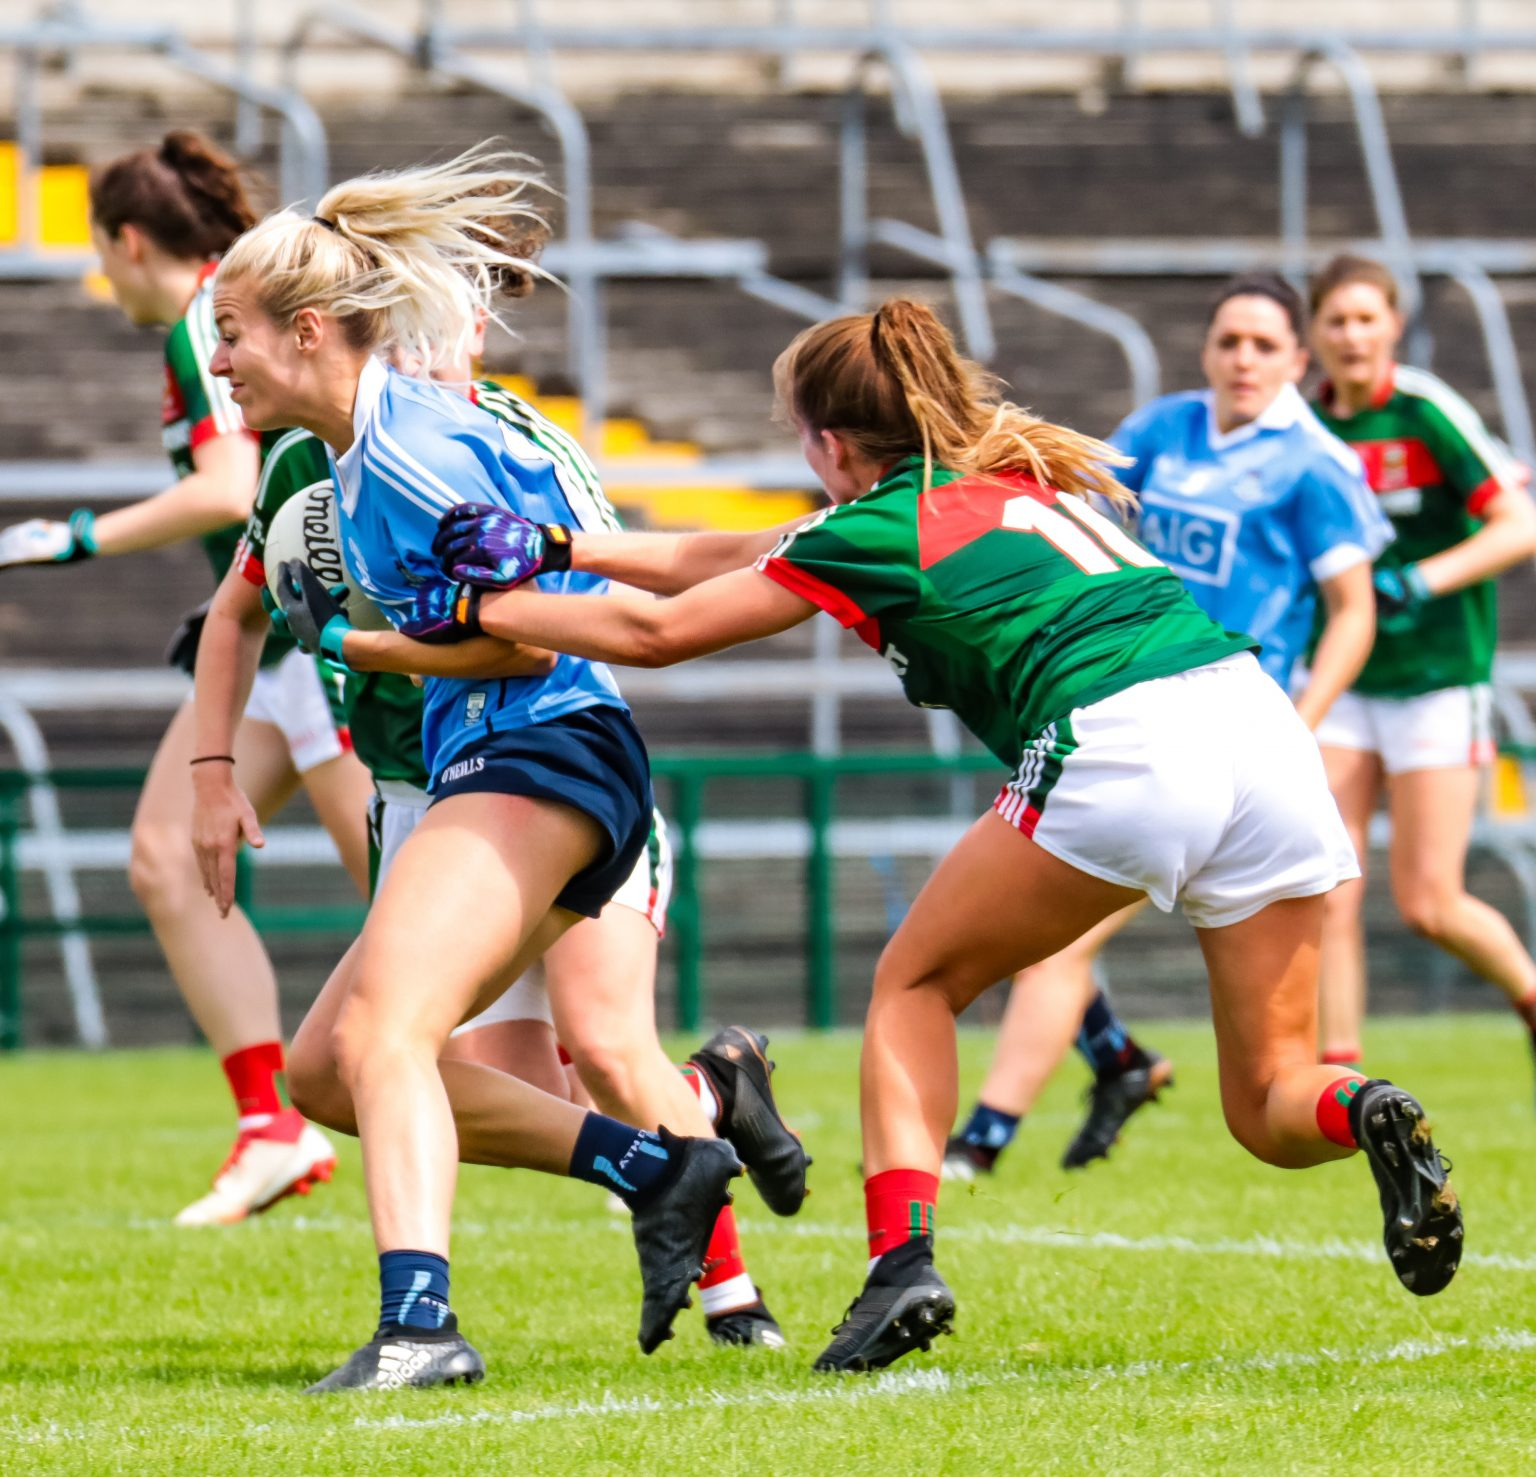 A dublin Ladies footballer in a sky blue jersey gets close attention from a Mayo player in a green and red jersey during Dublin's win which seen them advance to the All Ireland quarter finals